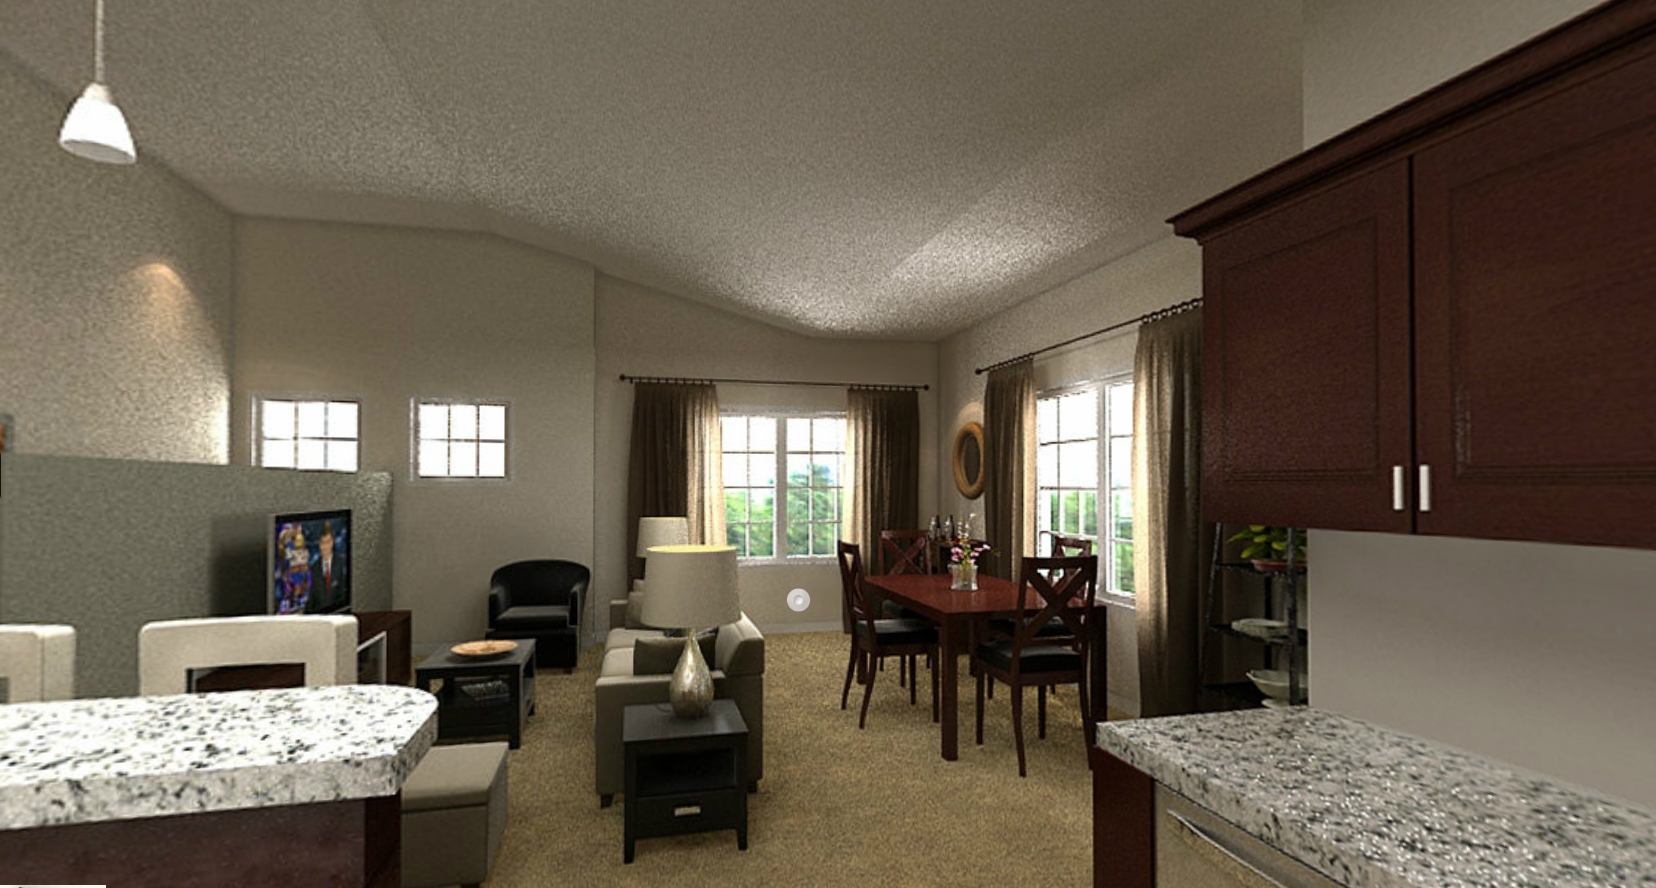 Living and dining area at Prairie Point in Merrillville, IN